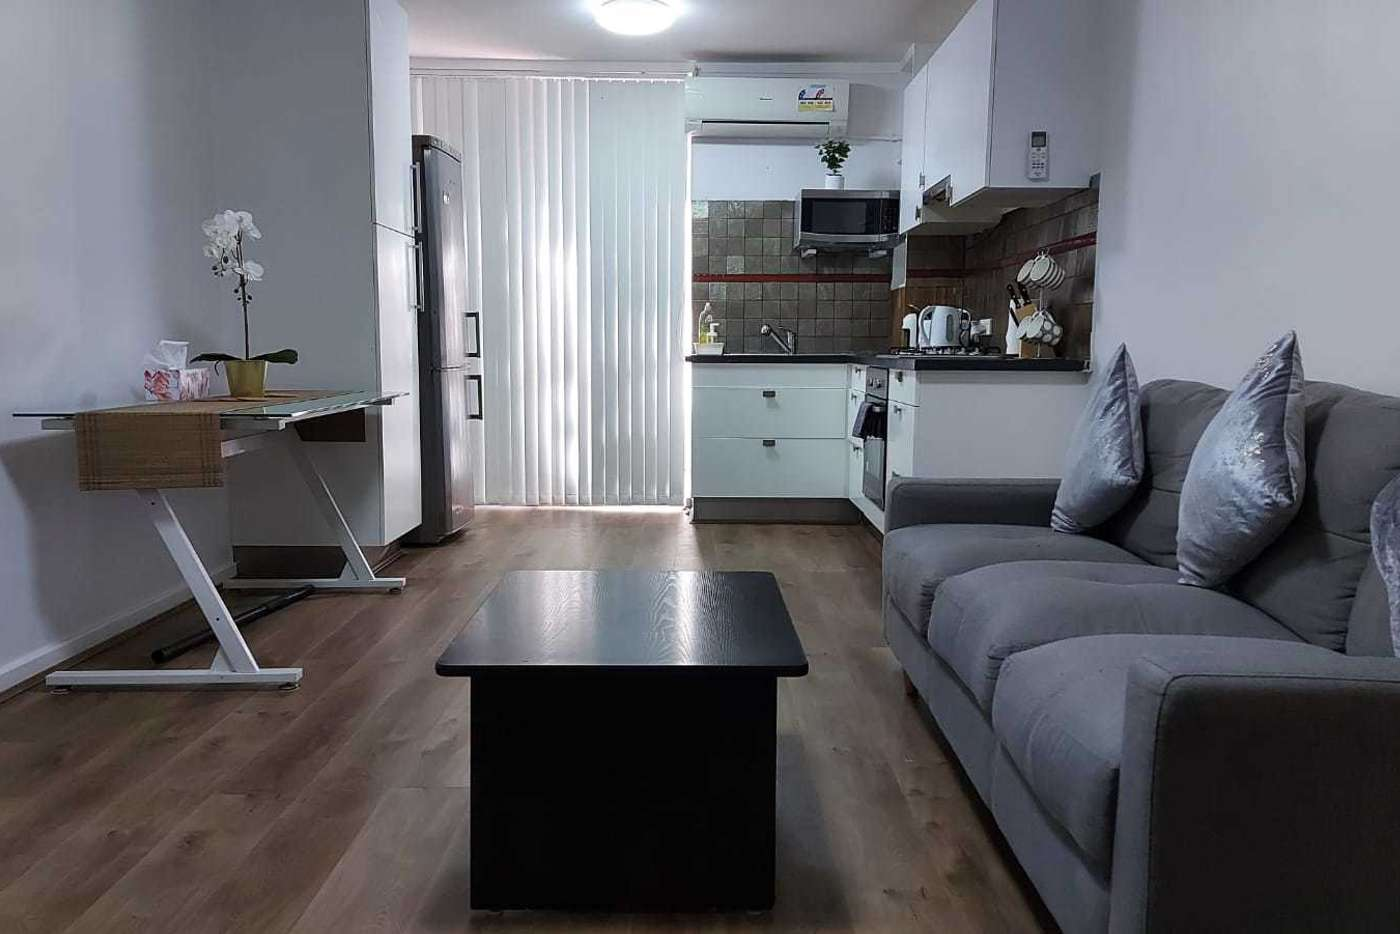 Main view of Homely apartment listing, Unit 2/36 Tenth Ave, Maylands WA 6051